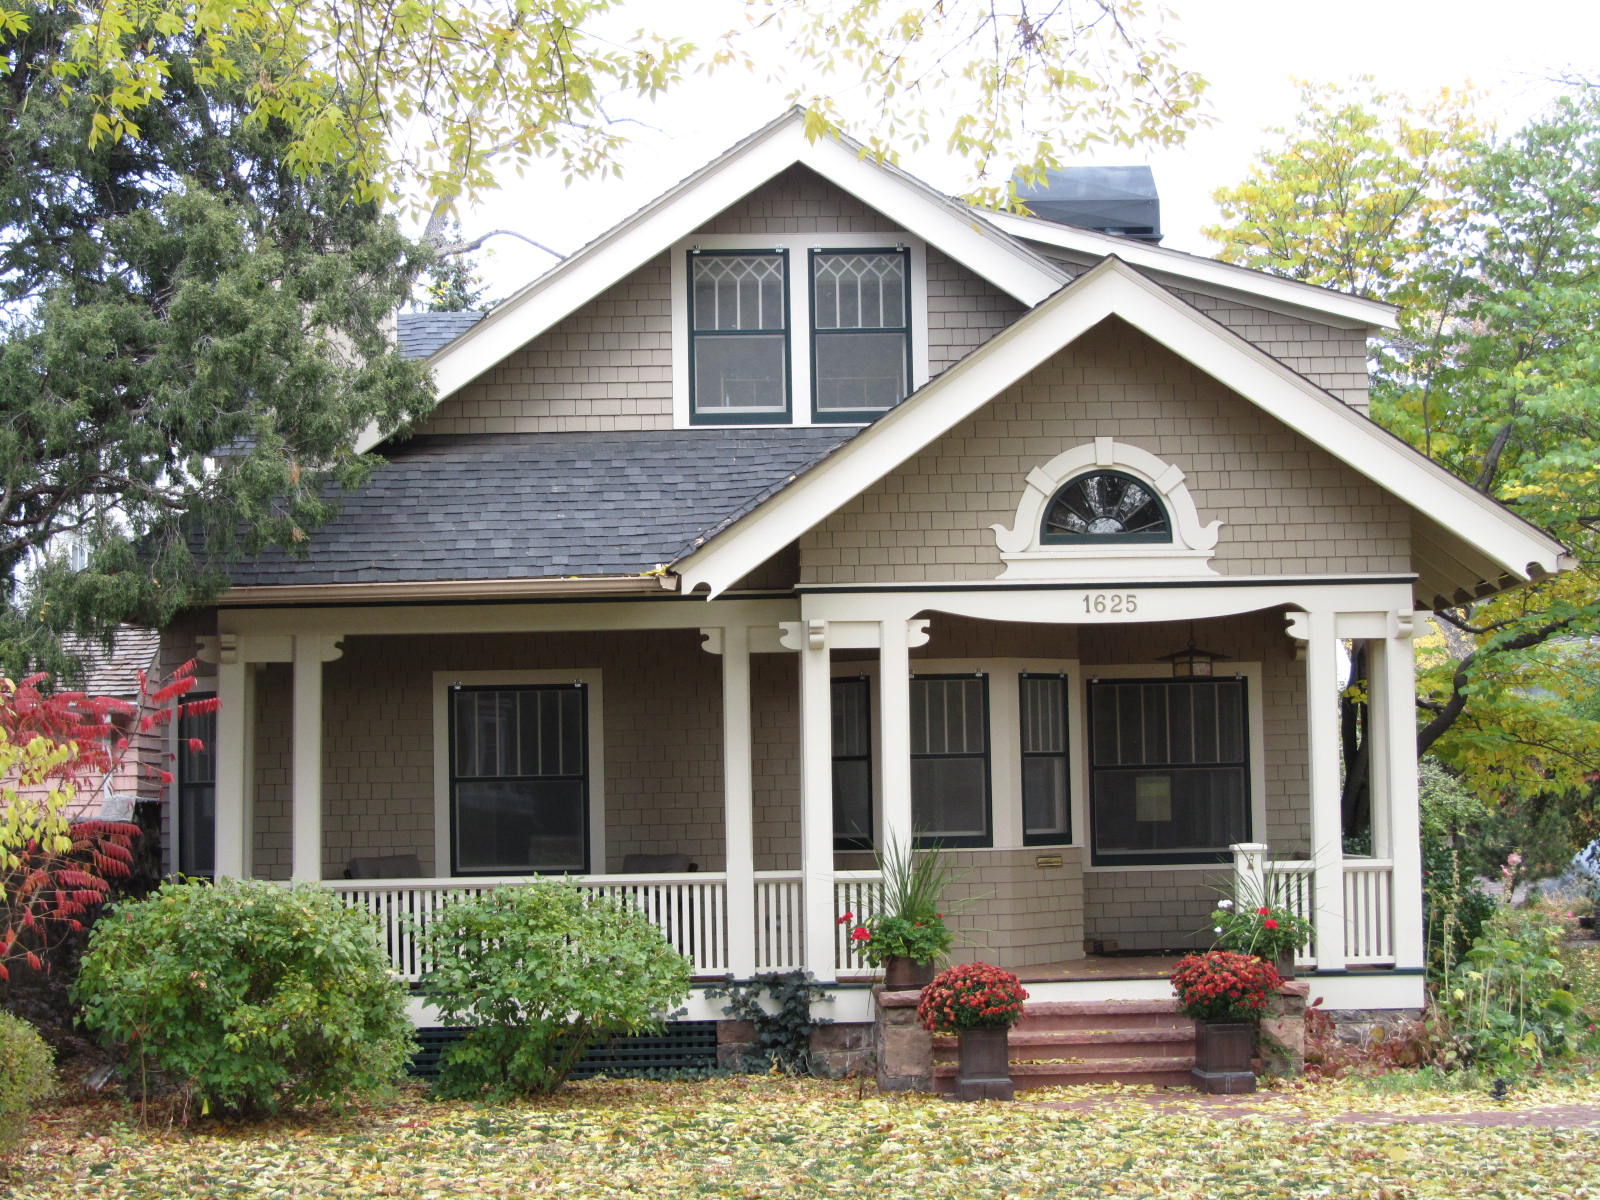 Inspiring Old American House Photo Architecture Plans